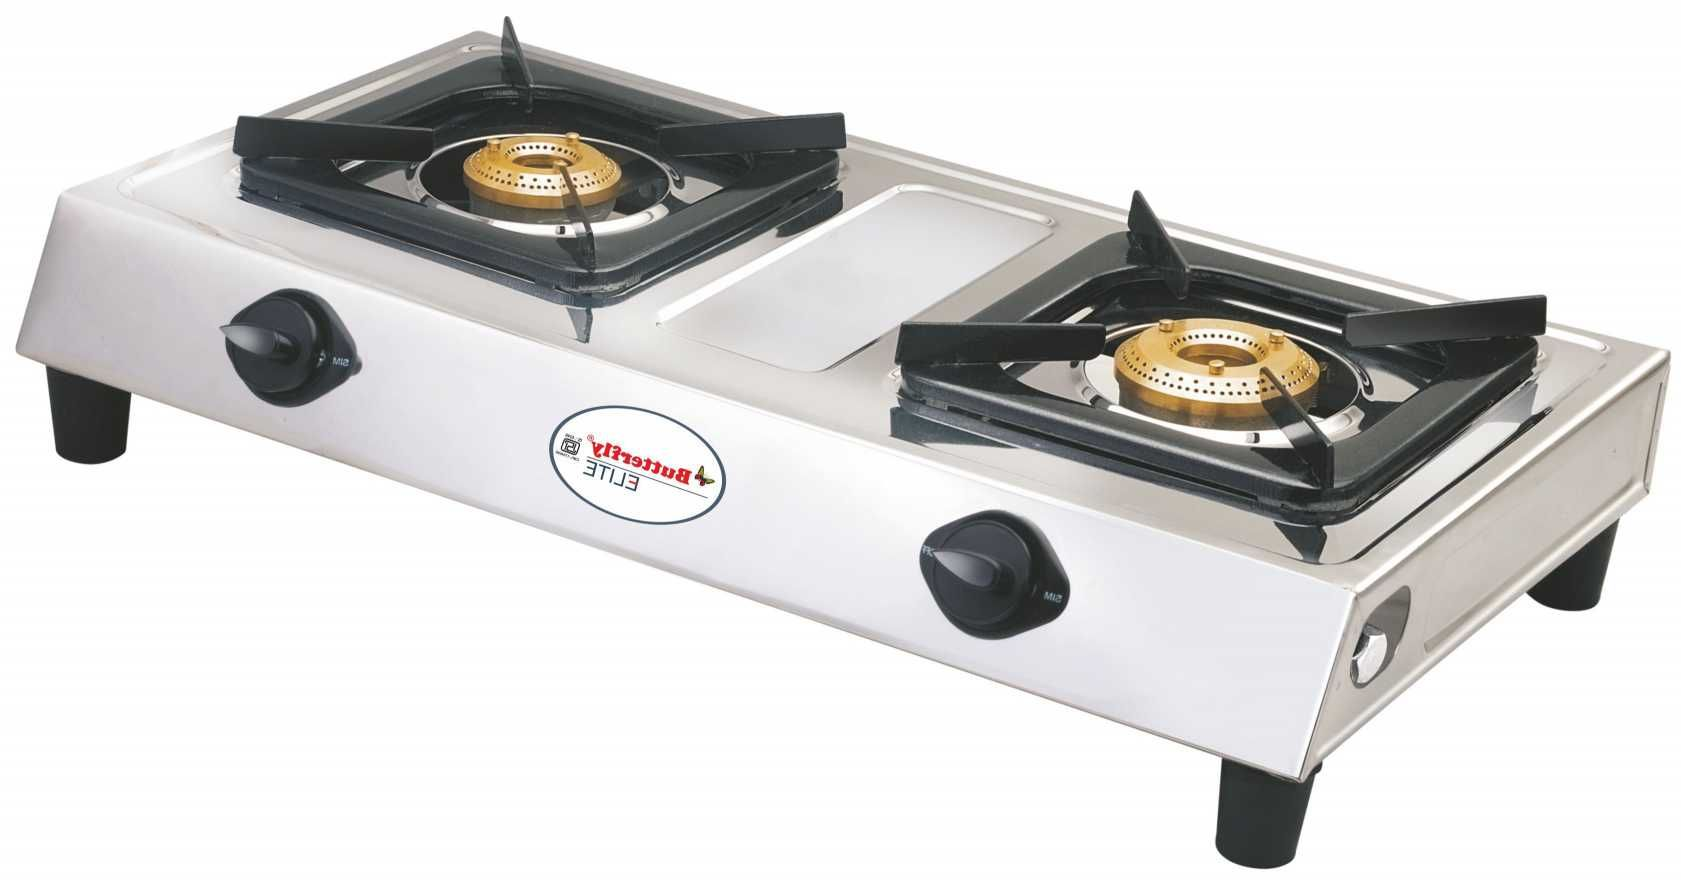 Butterfly Elite2bss 2 Burner Manual Gas Stove Price In India Buy Stove Prices Cheap Living Room Decor Kitchen Stove